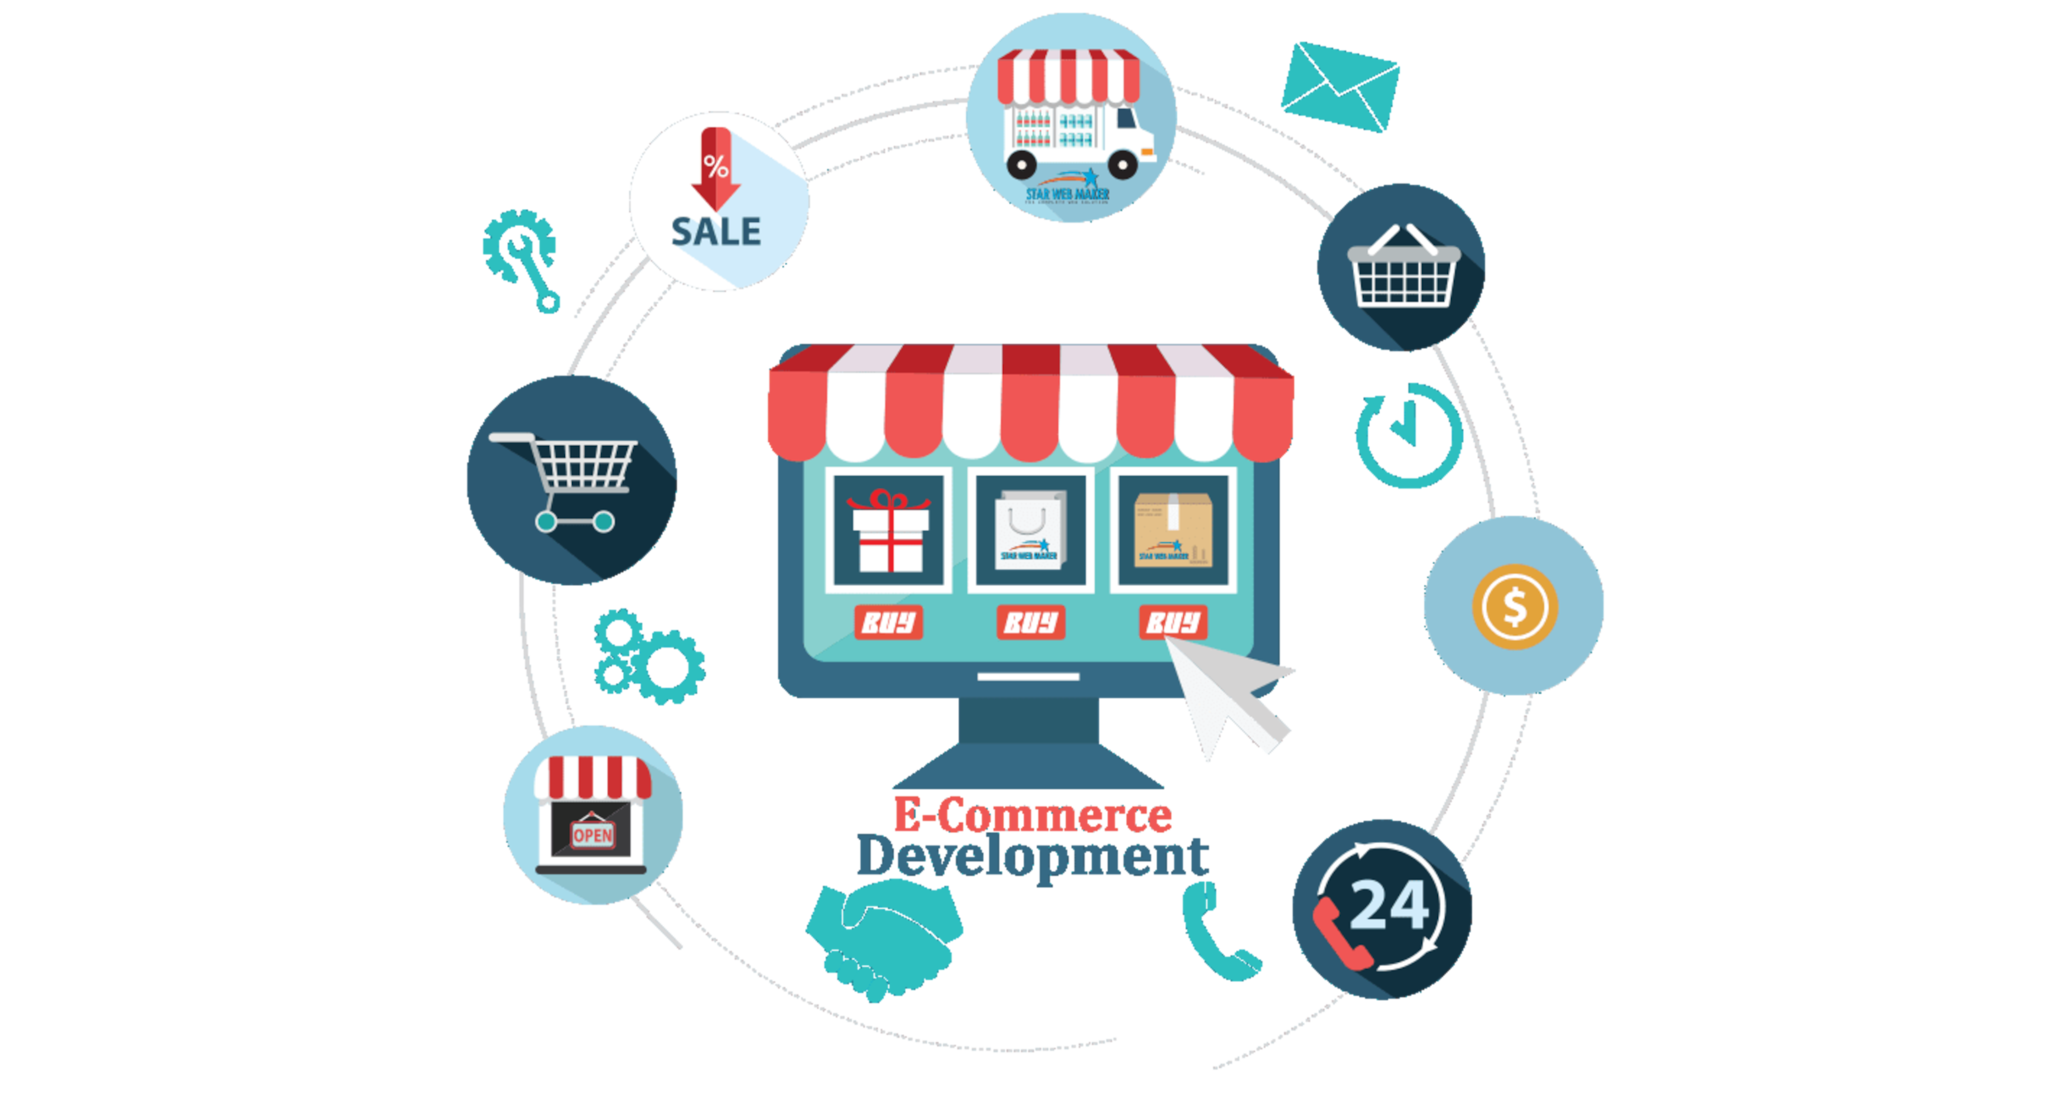 E-Commerce industry is developing quickly day by day and the key to winning the E-Commerce game lies in having an online presence that coordinates the desires of your audience and take them to the online store to purchase products. Consequently, whether you are a beginning-up or large enterprise, e-commerce will consistently be an eye-catcher for your business.  If you are searching for an innovative a professional E-Commerce website equipped with e-commerce functionalities, TECH GURU IT SOLUTIONS. has made a name in the E-Commerce Development Industry by giving and implementing e-commerce development solutions from scratch. We offer user-friendly and perfect ecommerce website development services which can be managed effectively after development.  Being the best E-Commerce Development Company, at TECH GURU IT SOLUTIONS. with top quality ecommerce website design and development services, we focus on leveraging customer experience to advance online shopping B2B and B2C ventures. We provide excellent E-Commerce development services to our seaward clients in UK, USA, Australia, Sweden, Canada, Germany, France and Europe and everywhere on the world.